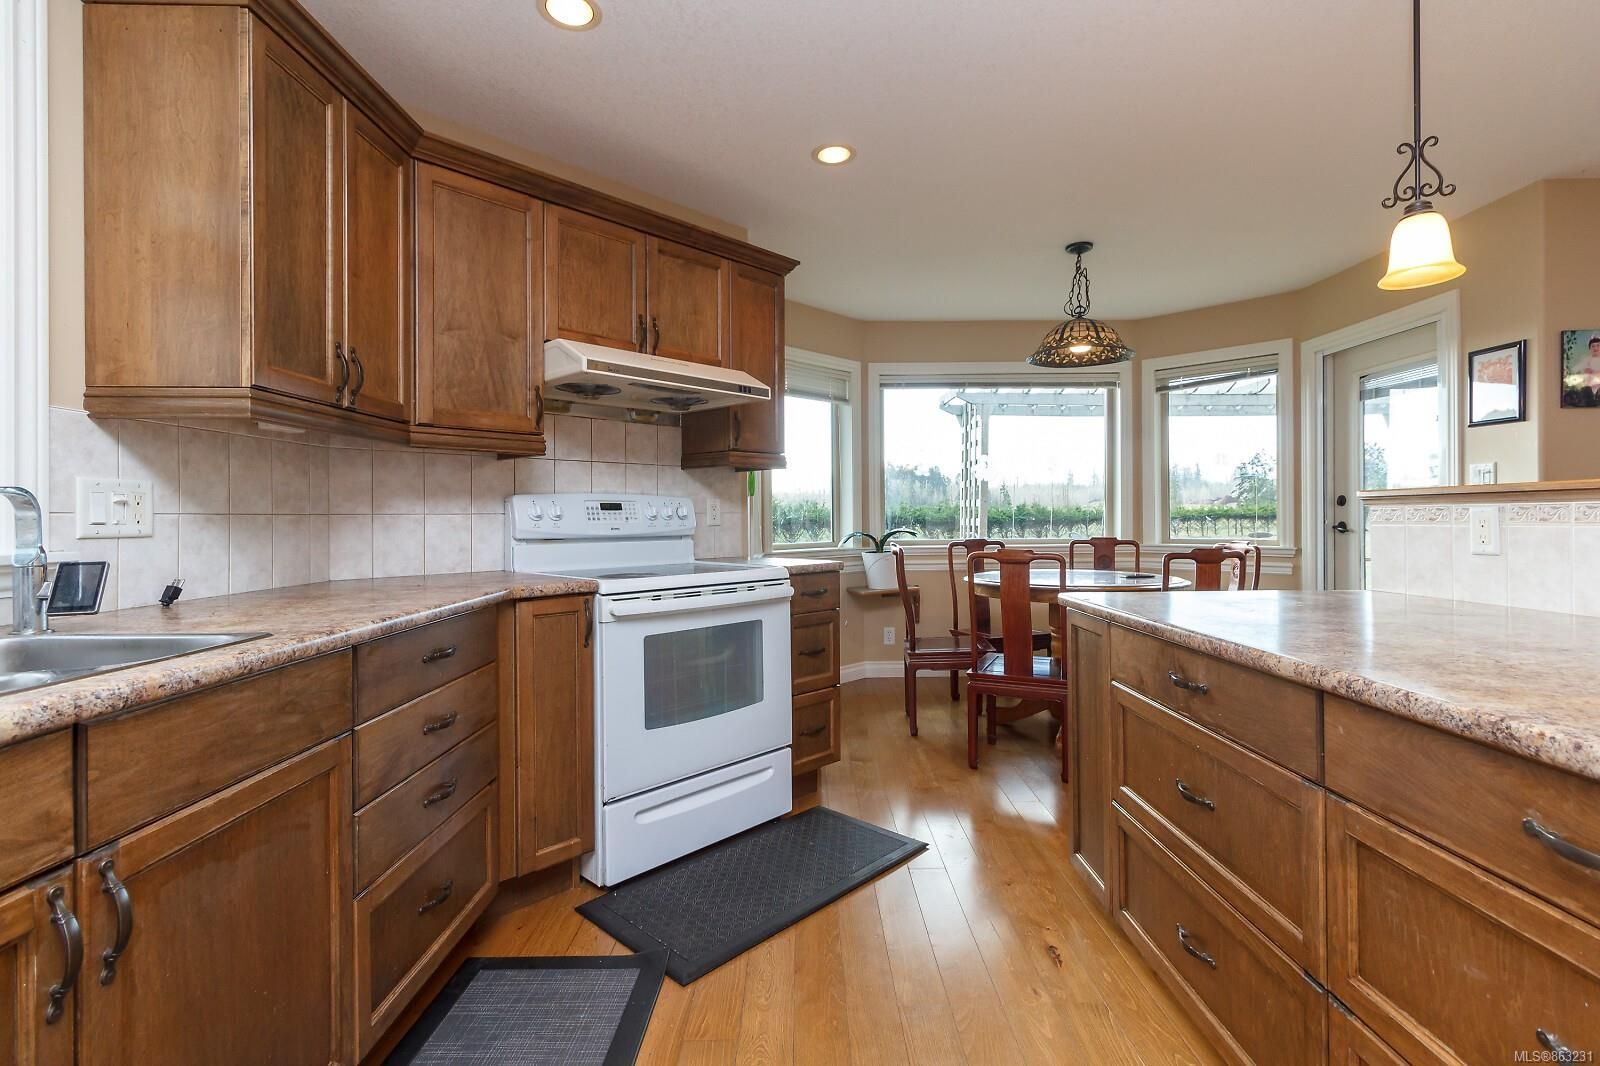 Photo 8: Photos: 1230 Hodges Rd in : PQ French Creek House for sale (Parksville/Qualicum)  : MLS®# 863231